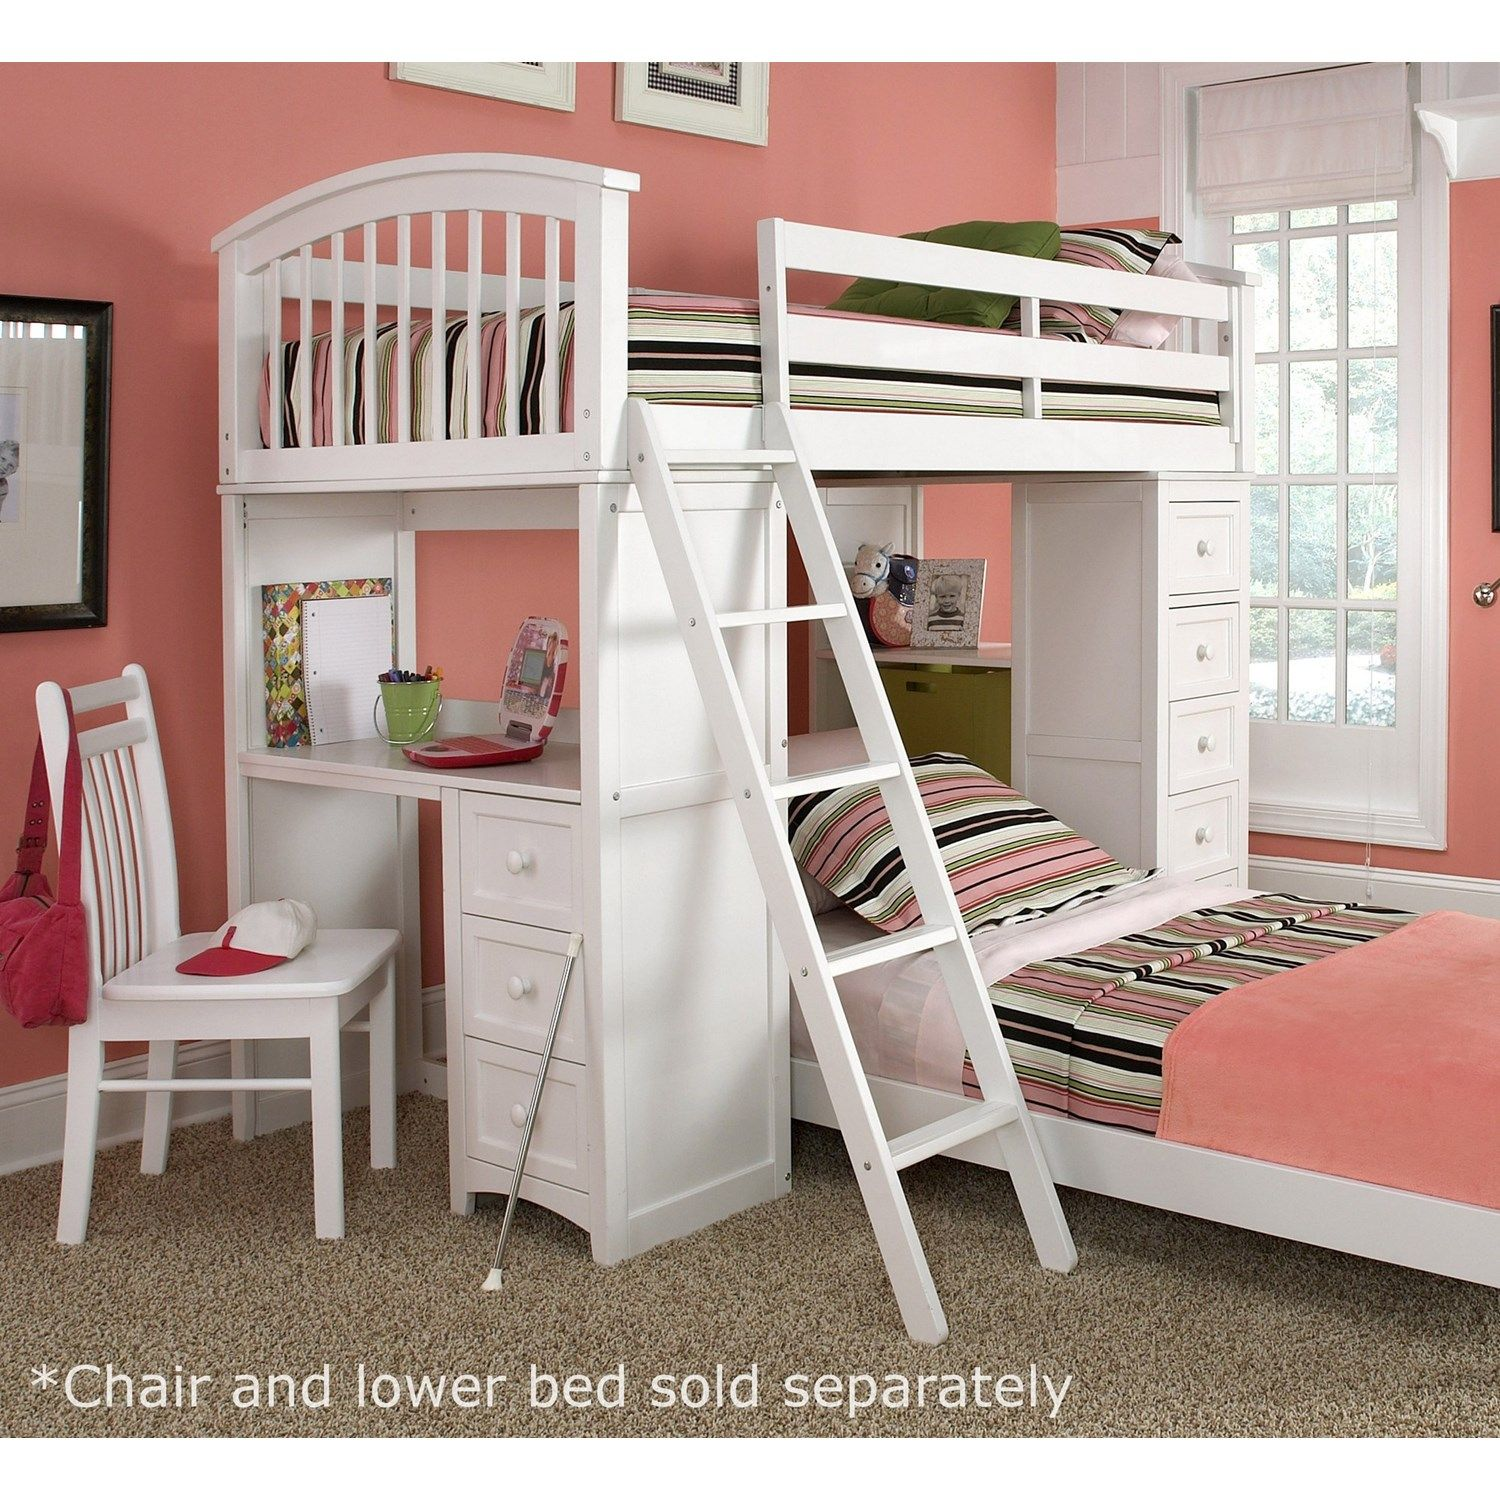 Low loft bed with stairs and storage  In a compact footprint you get it all with the NE Kids School House